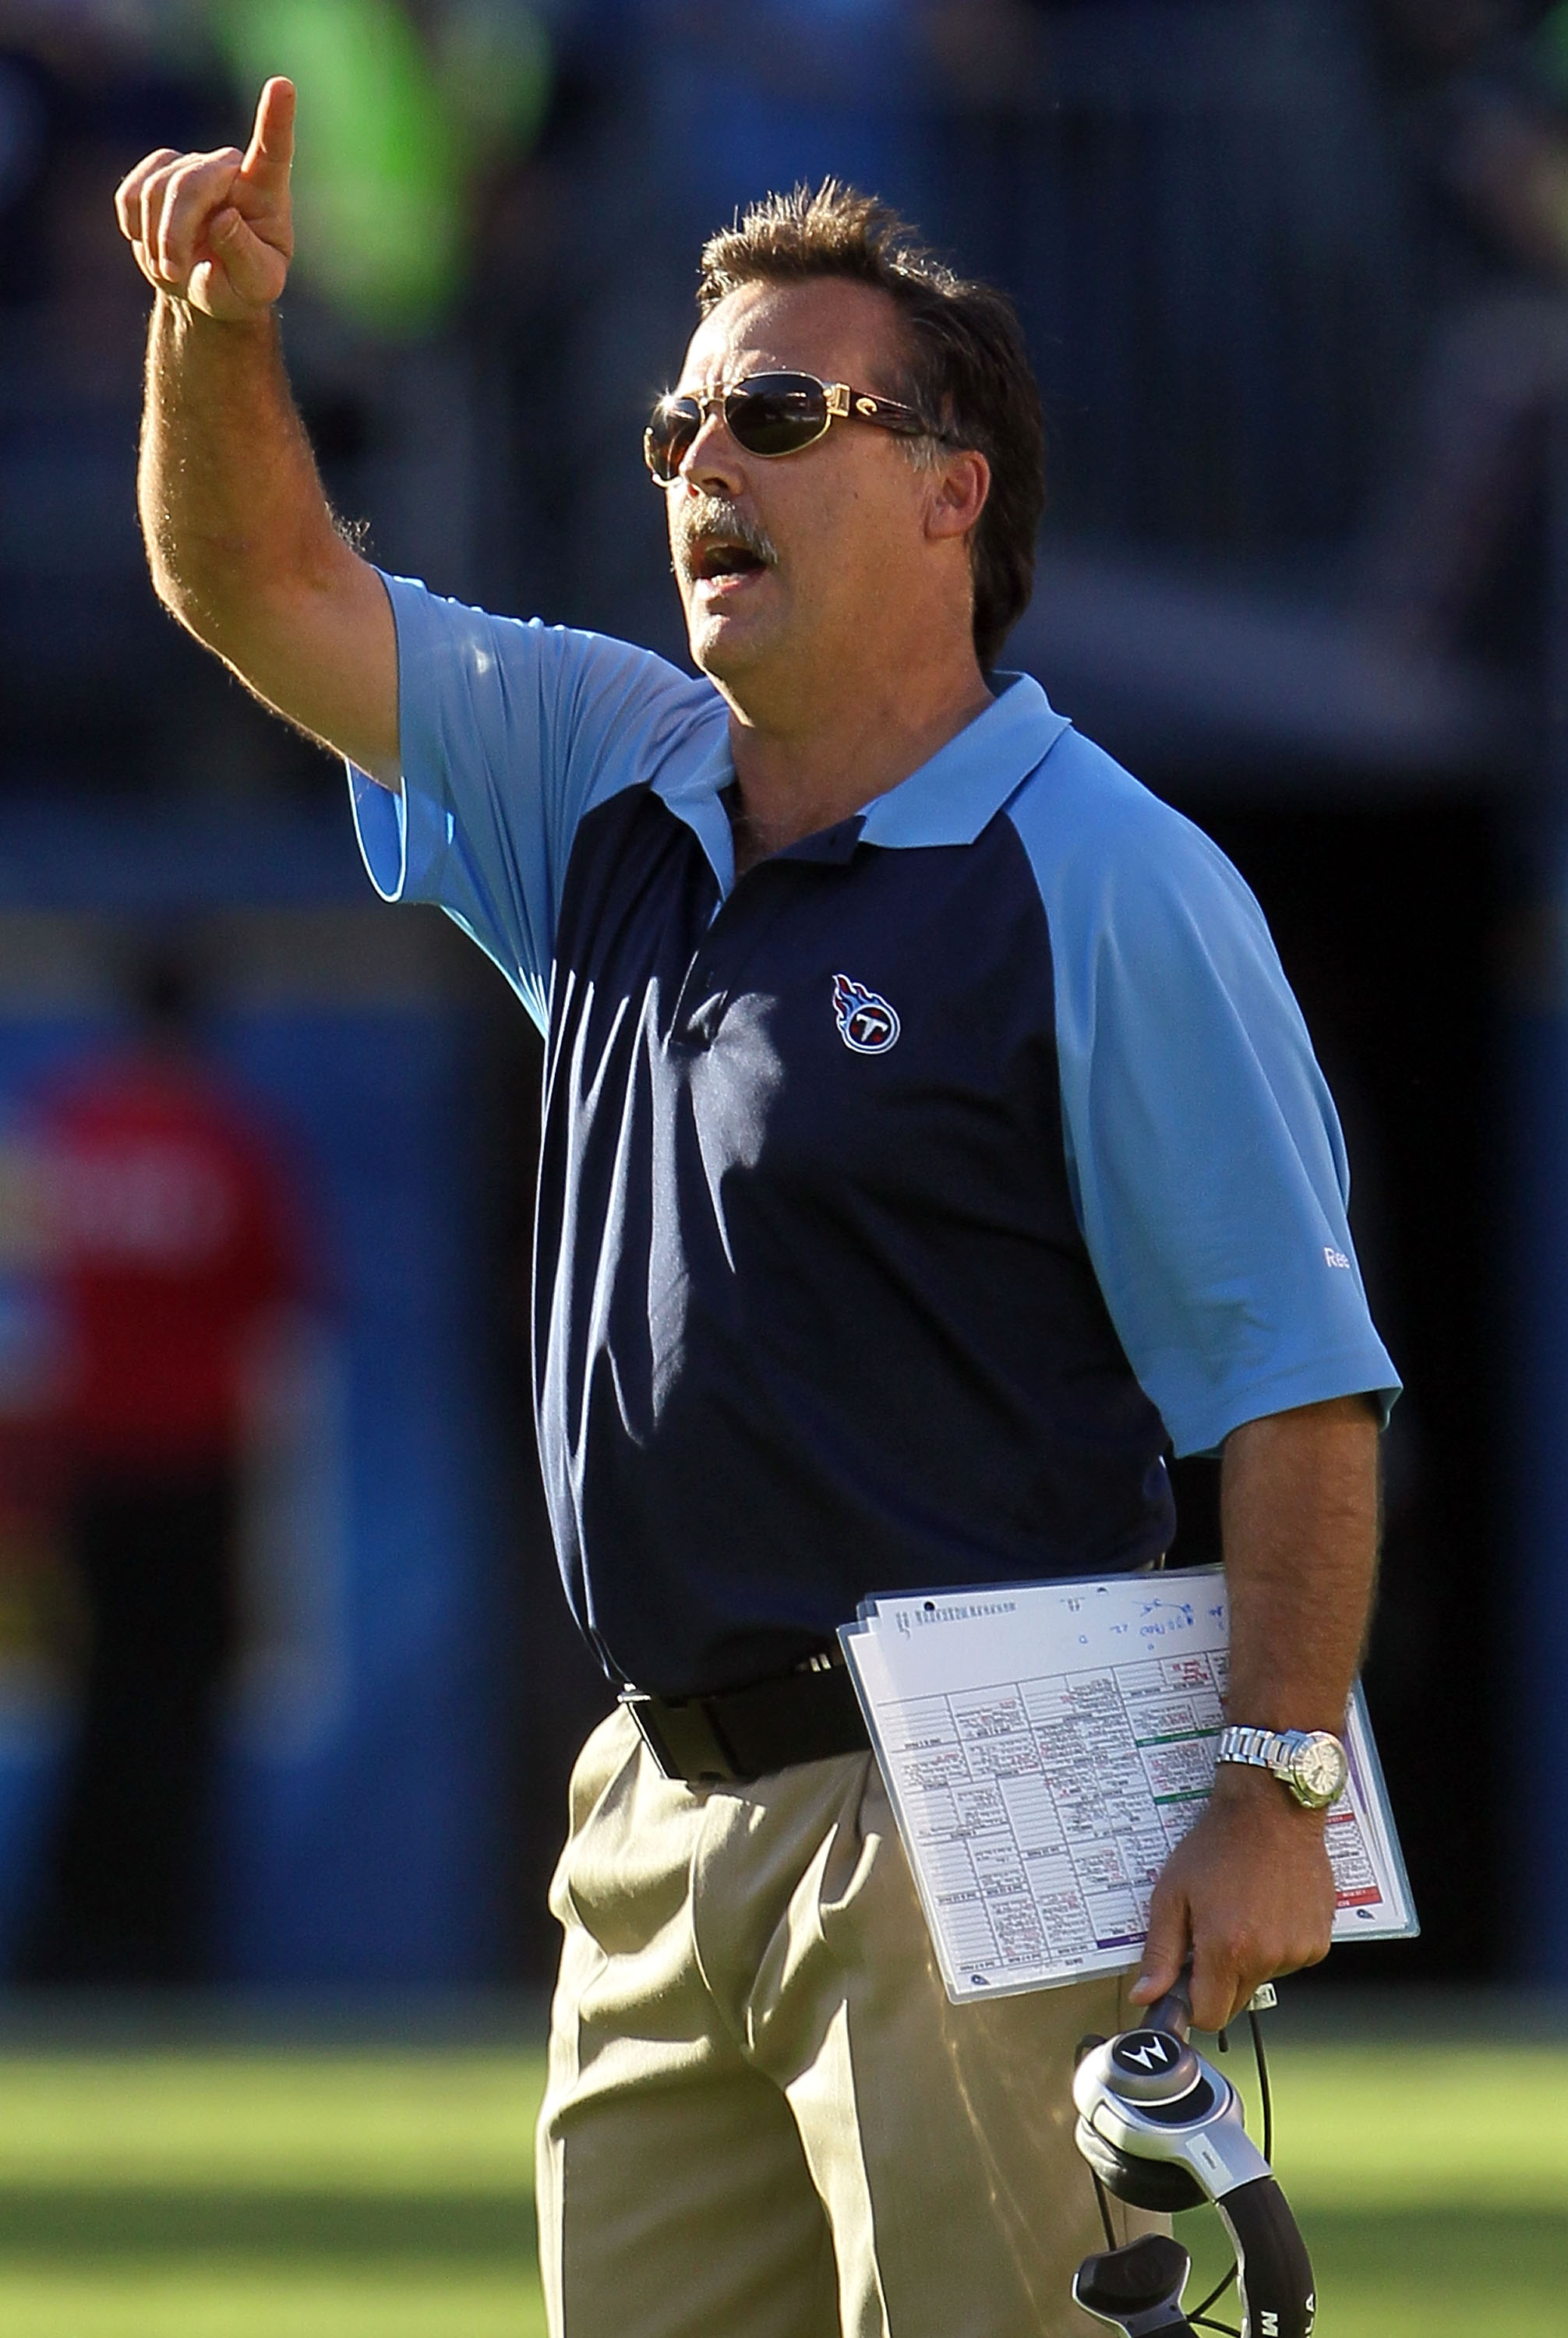 SAN DIEGO - OCTOBER 31:  Tennessee Titans head coach Jeff Fisher watches the game from the sideline against the San Diego Chargers at Qualcomm Stadium on October 31, 2010 in San Diego, California.  (Photo by Jeff Gross/Getty Images)